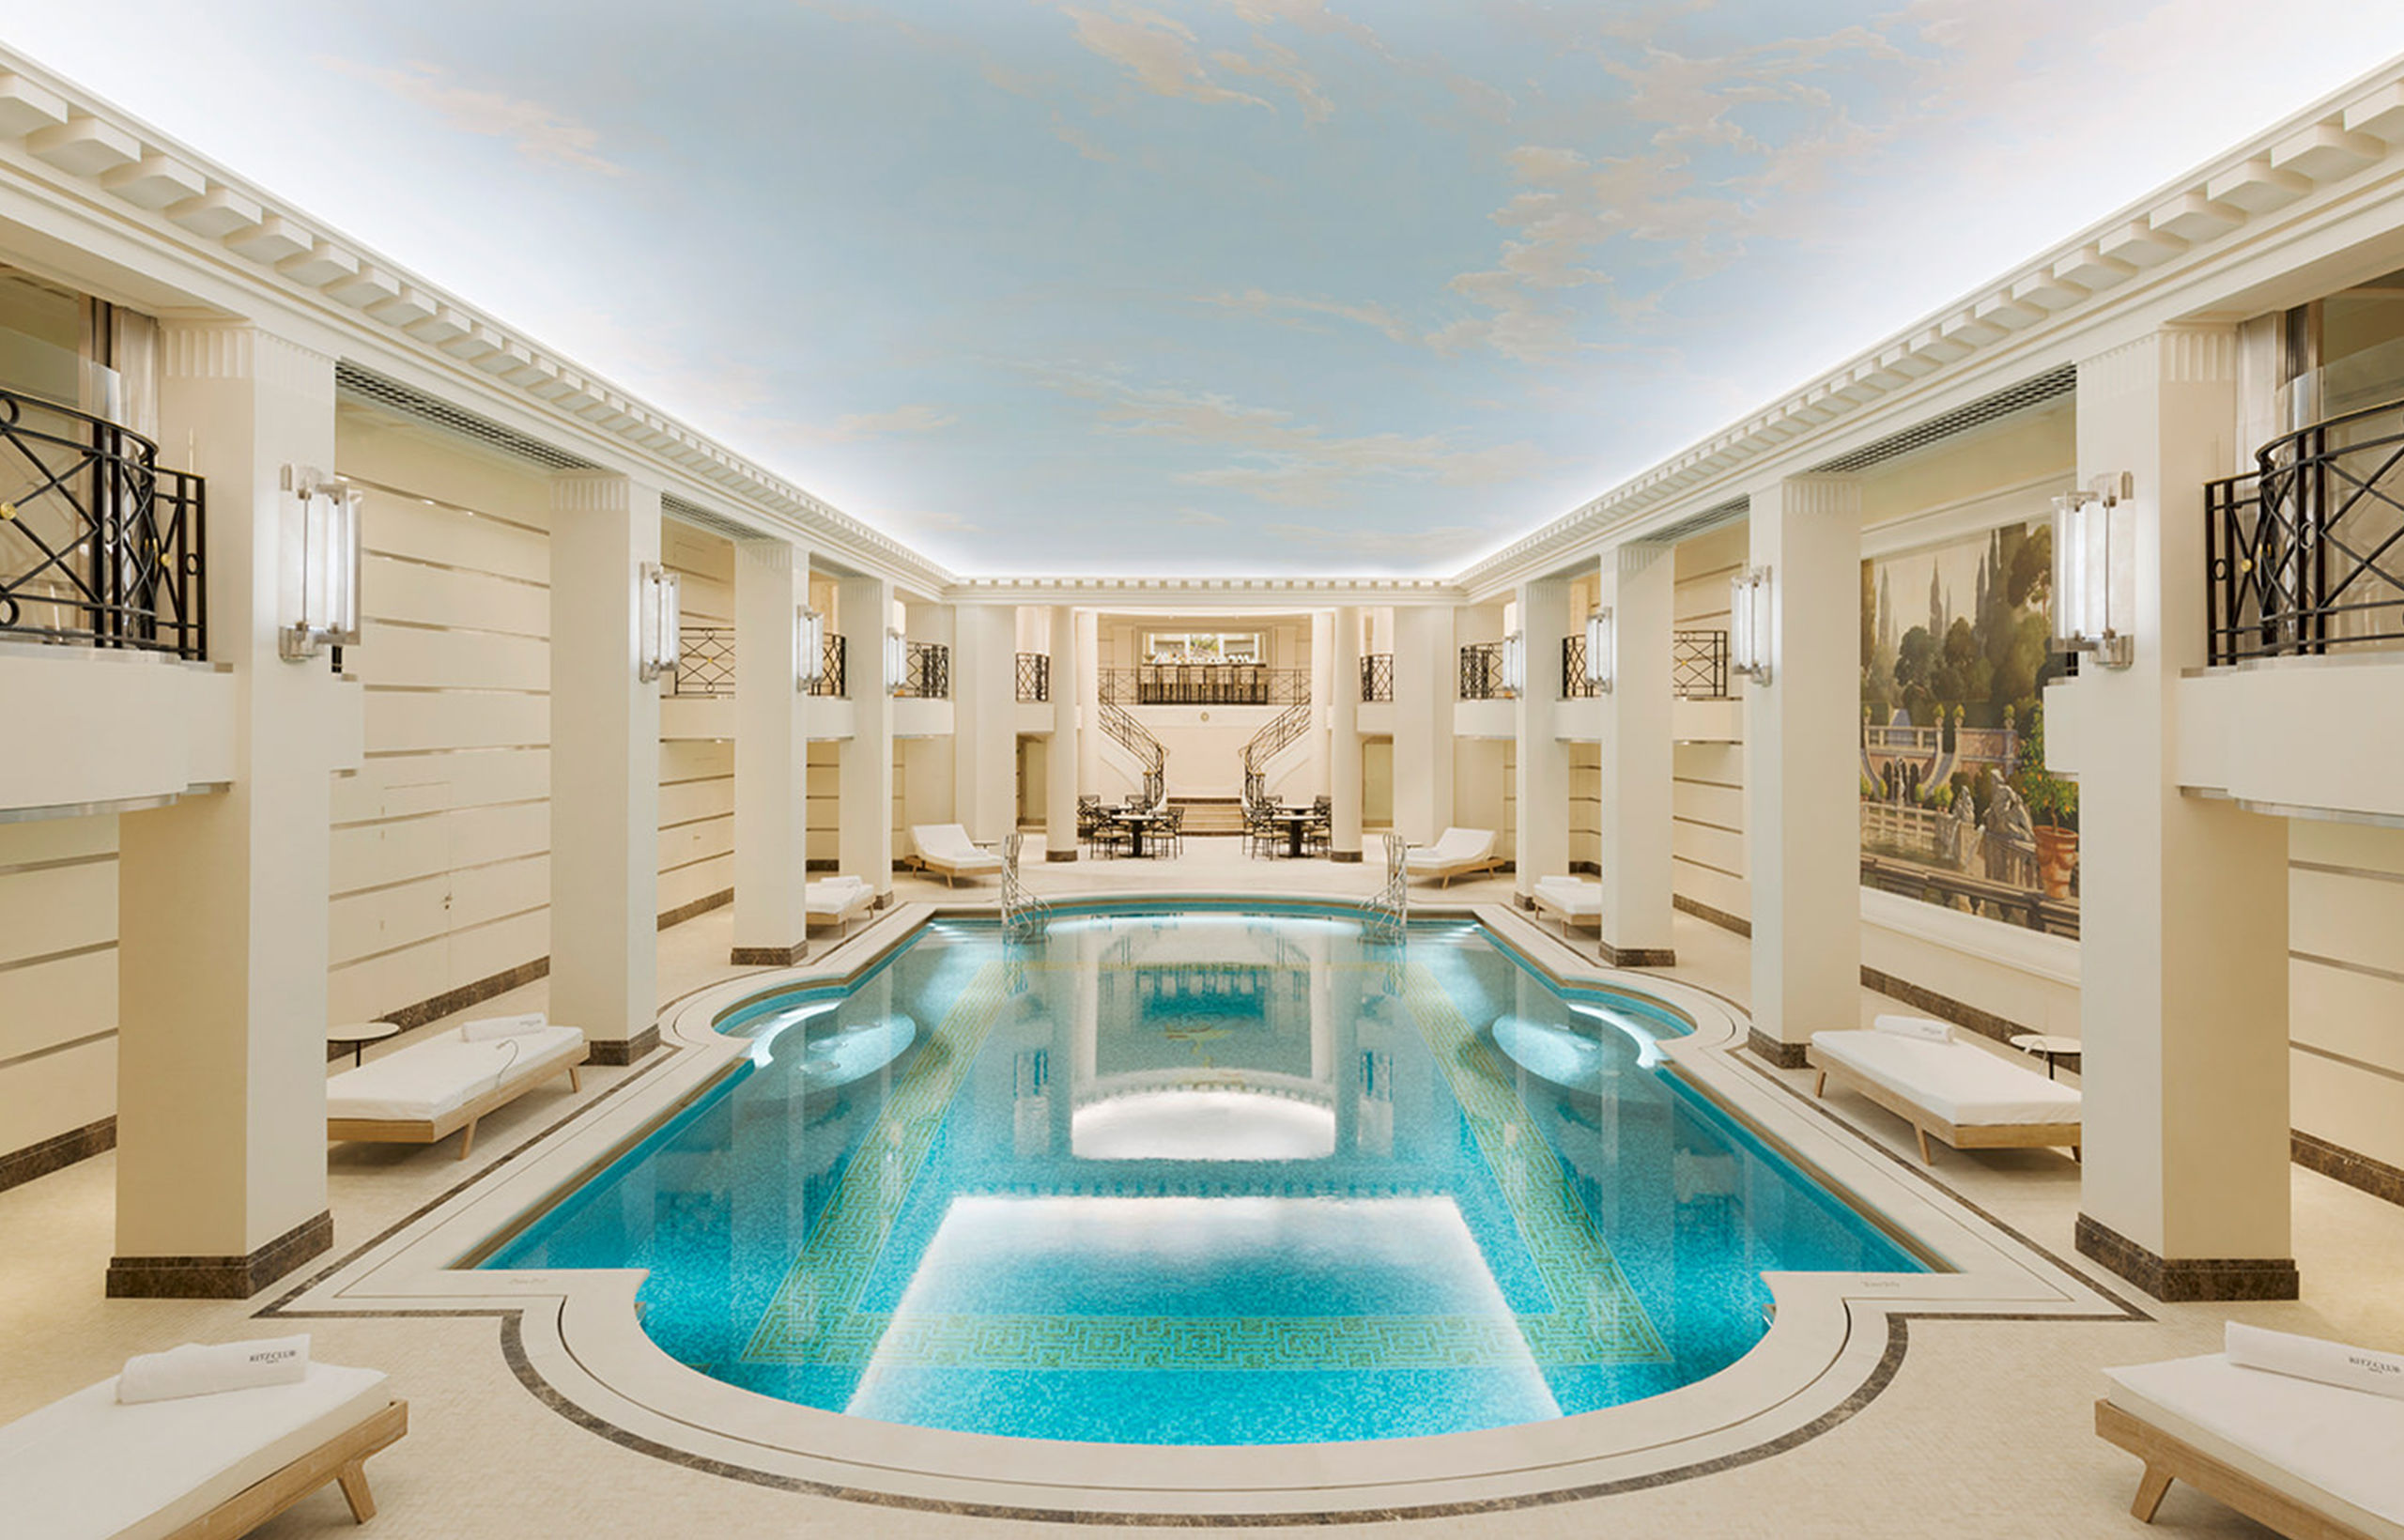 Ritz Club Paris pool